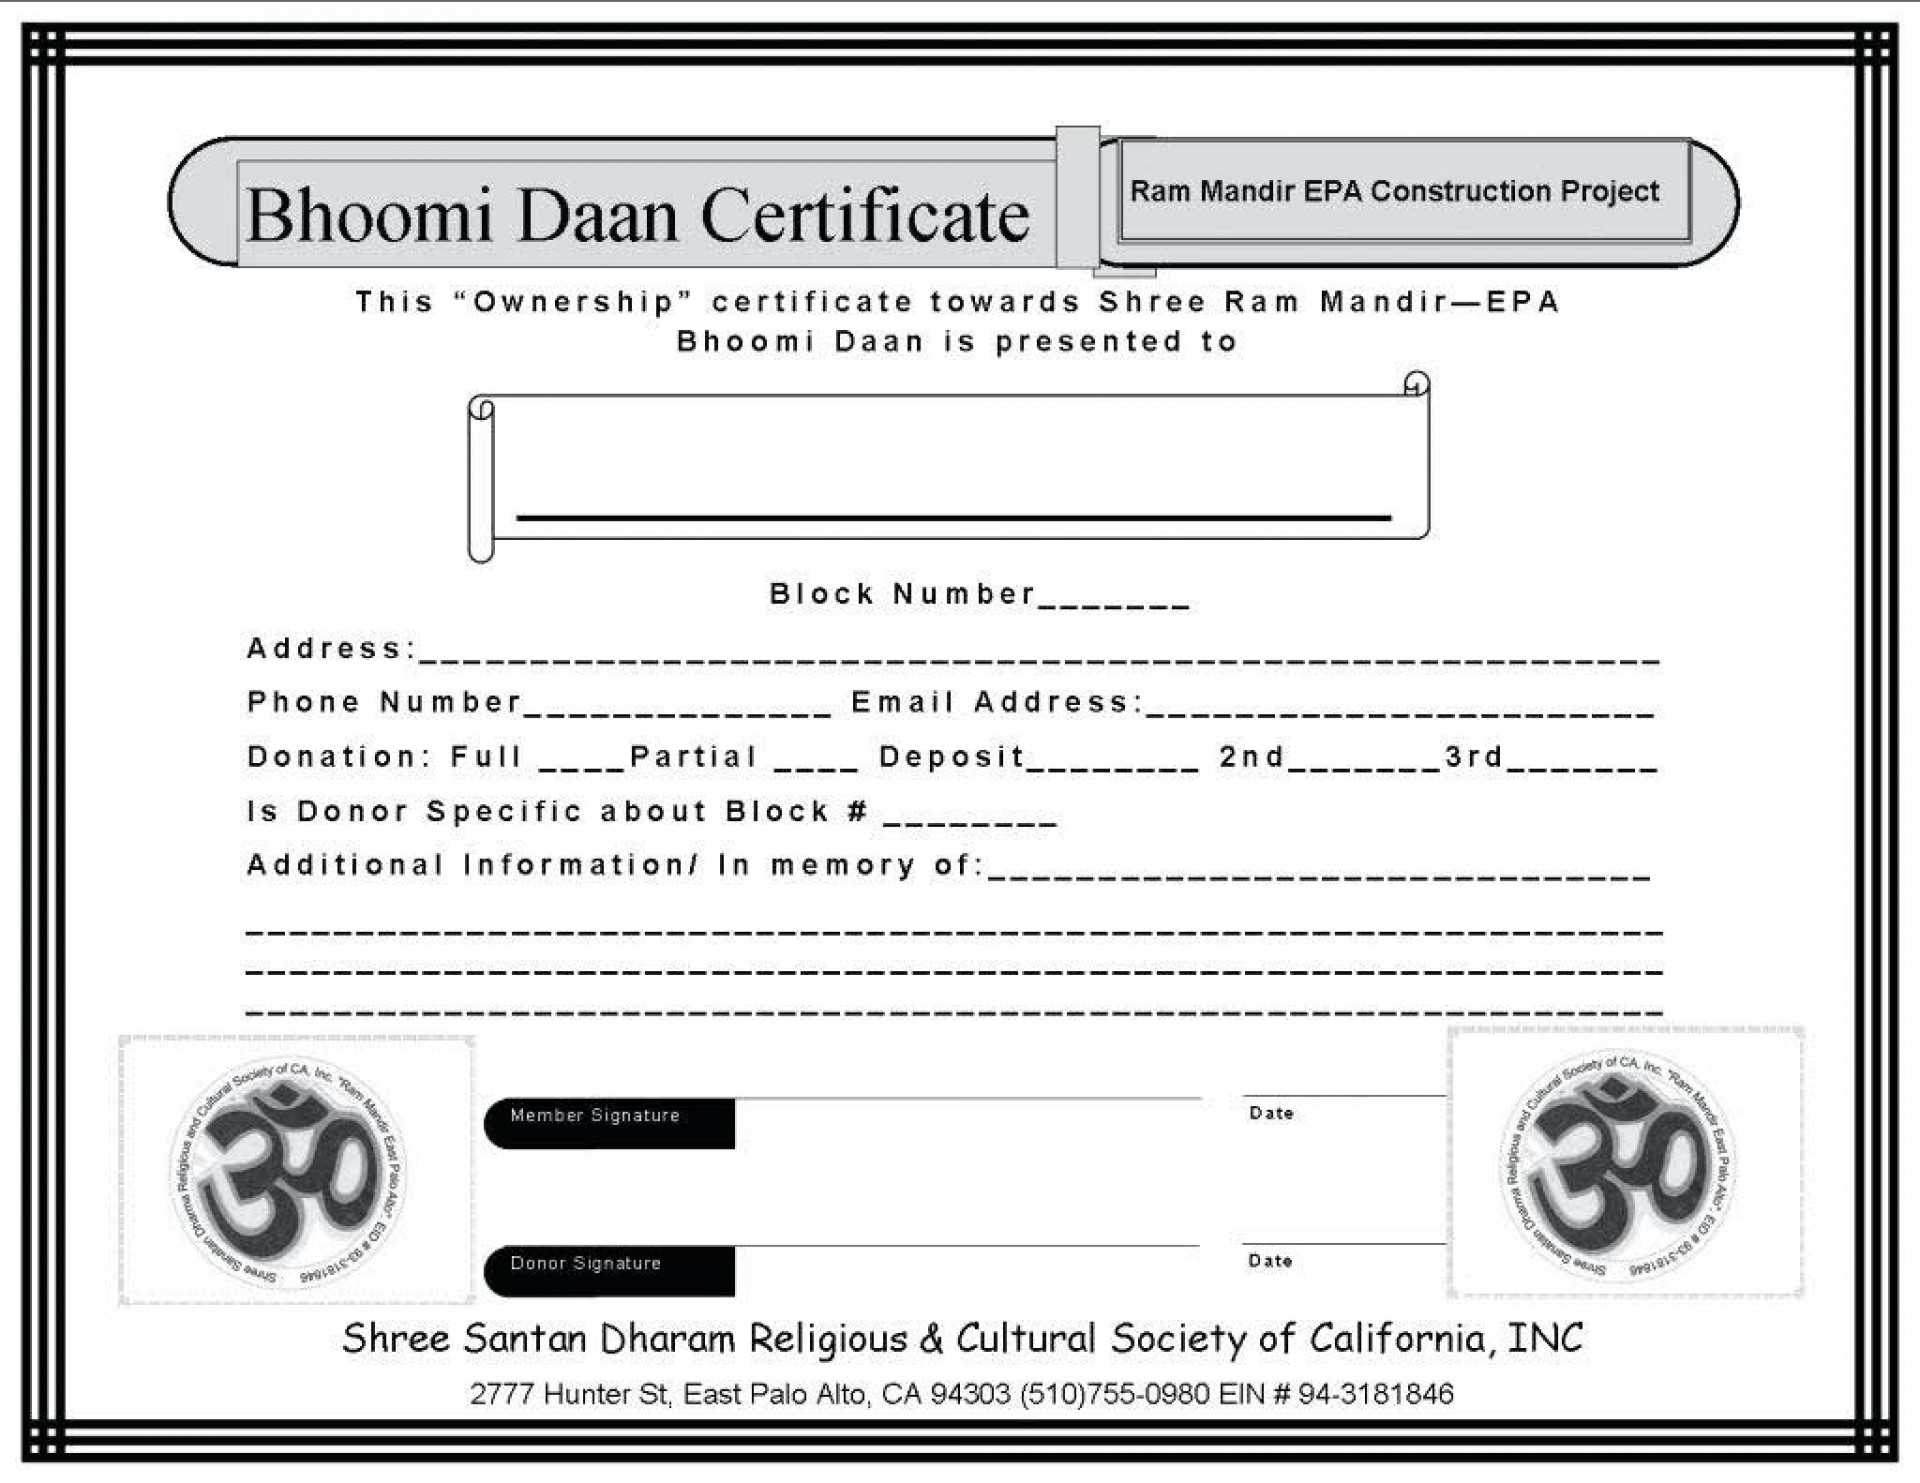 029 Professionalreceipt Template Ideas Donation Receipt Within Ownership Certificate Template